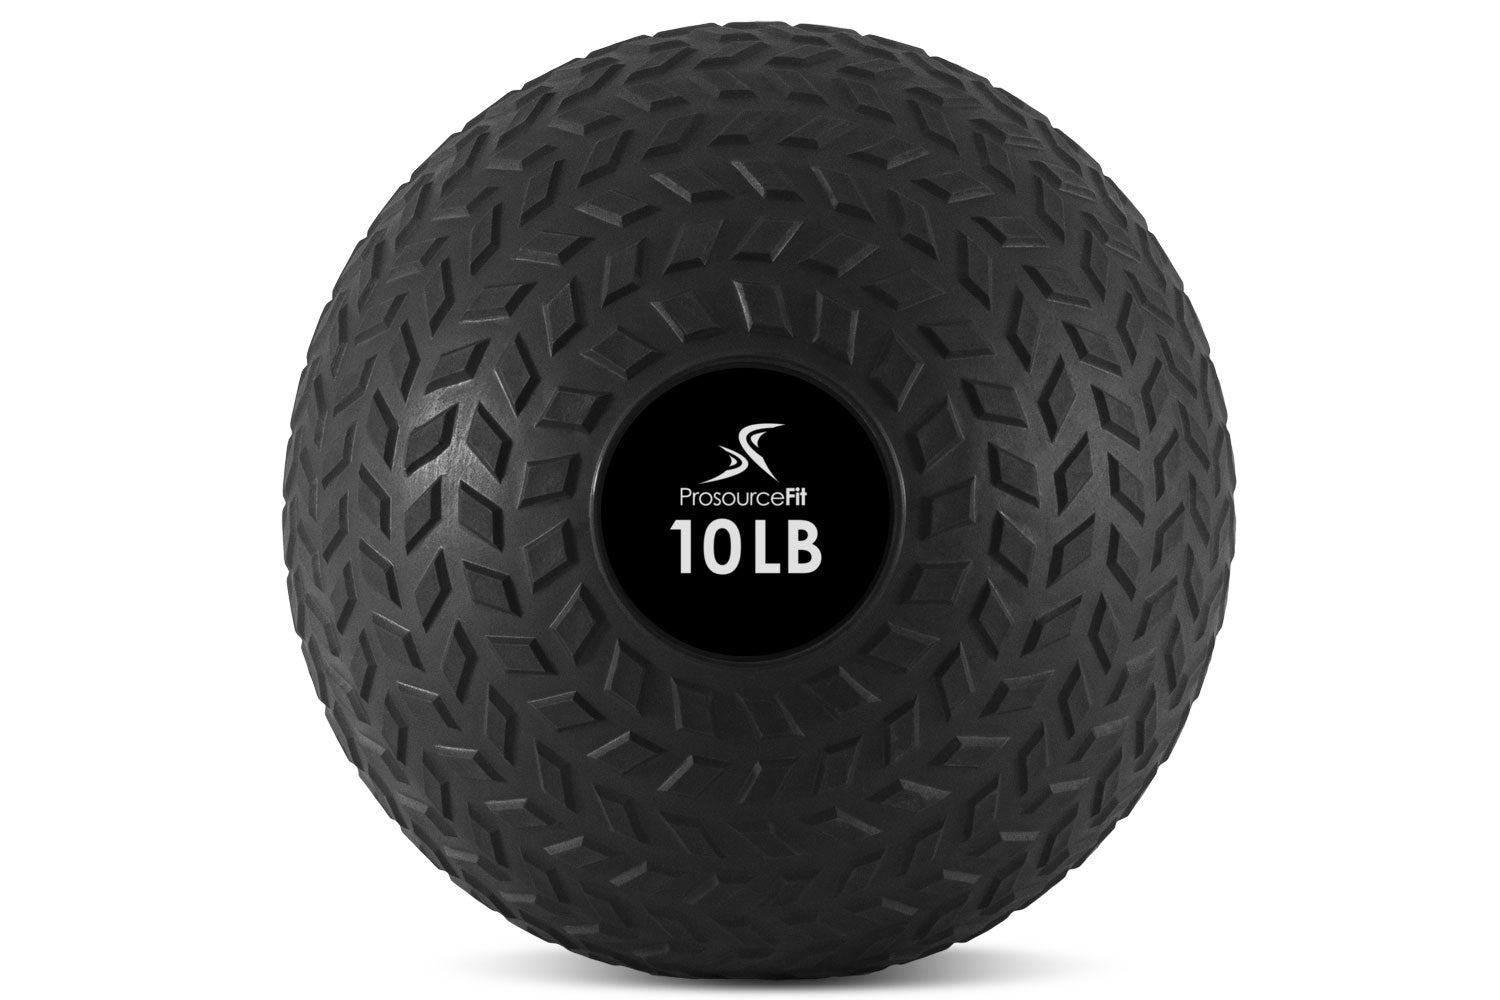 10 lb Tread Slam Ball